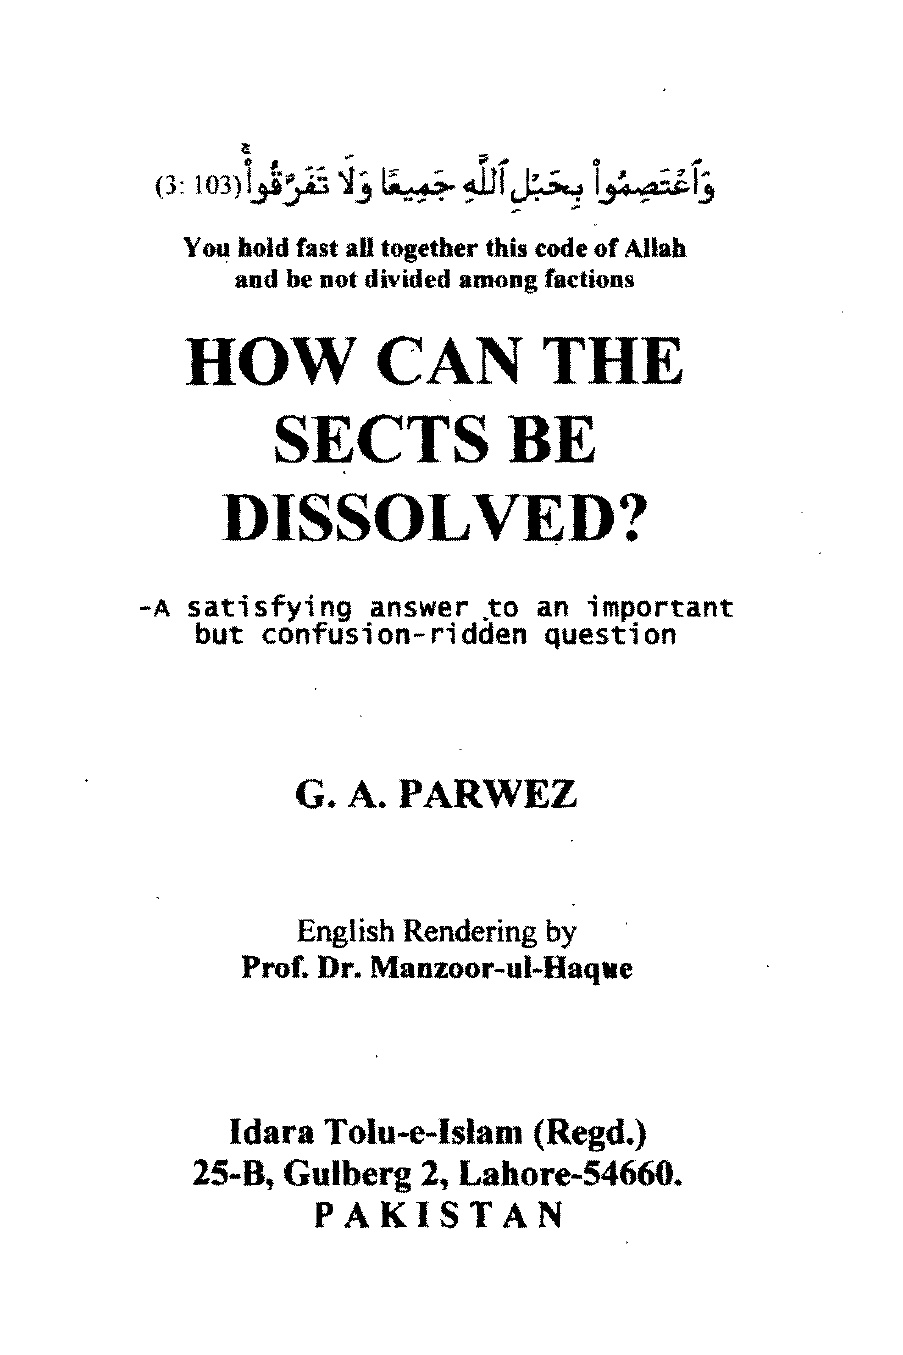 How-can-the-Sects-of-dissolved